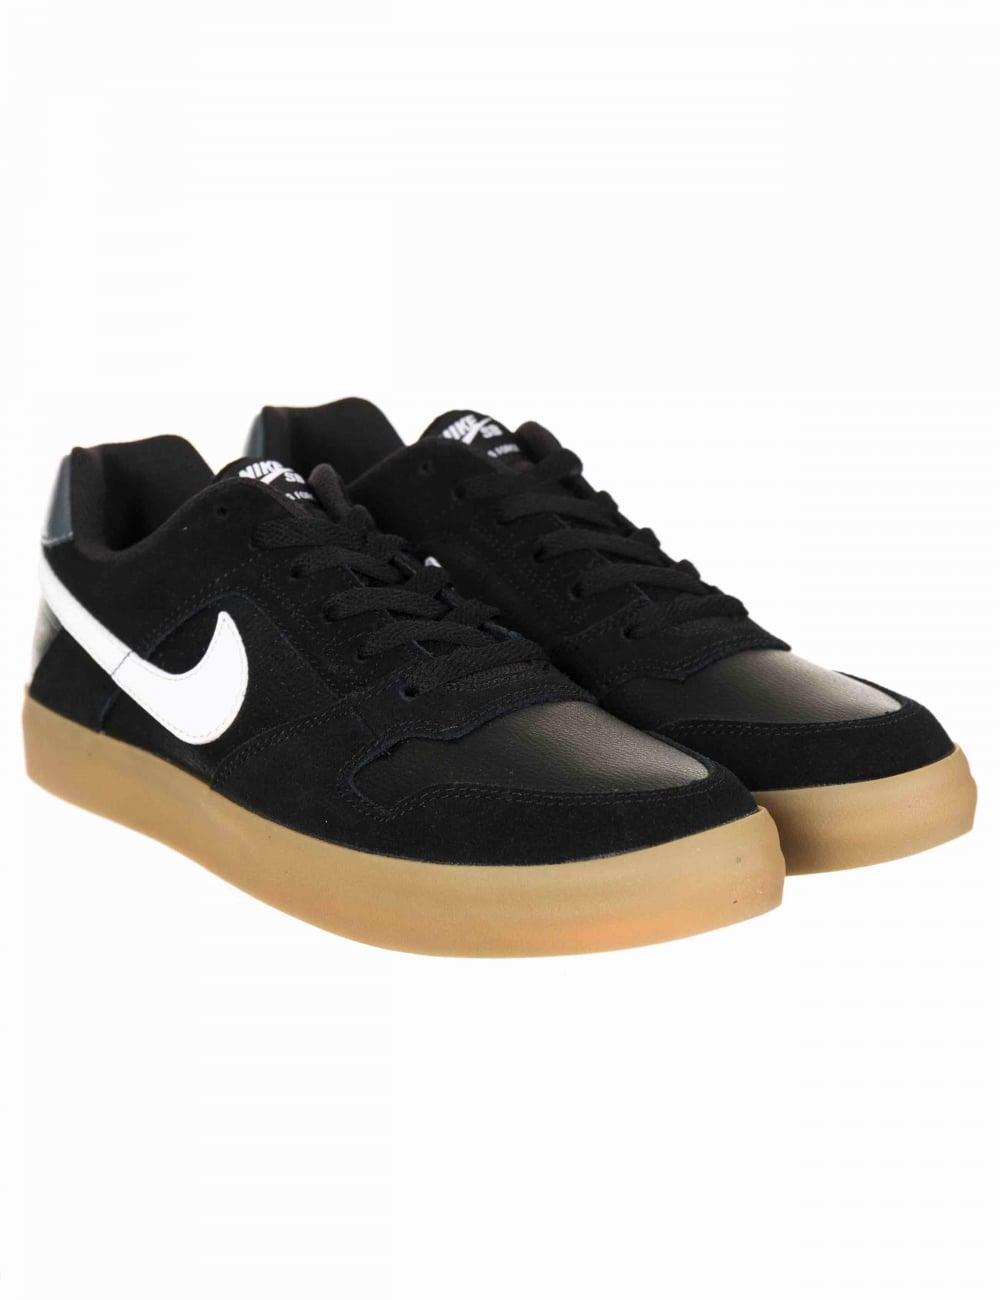 61070c6c4ab70 Nike SB Delta Force Vulc Trainers - Black/White-Gum - Footwear from ...